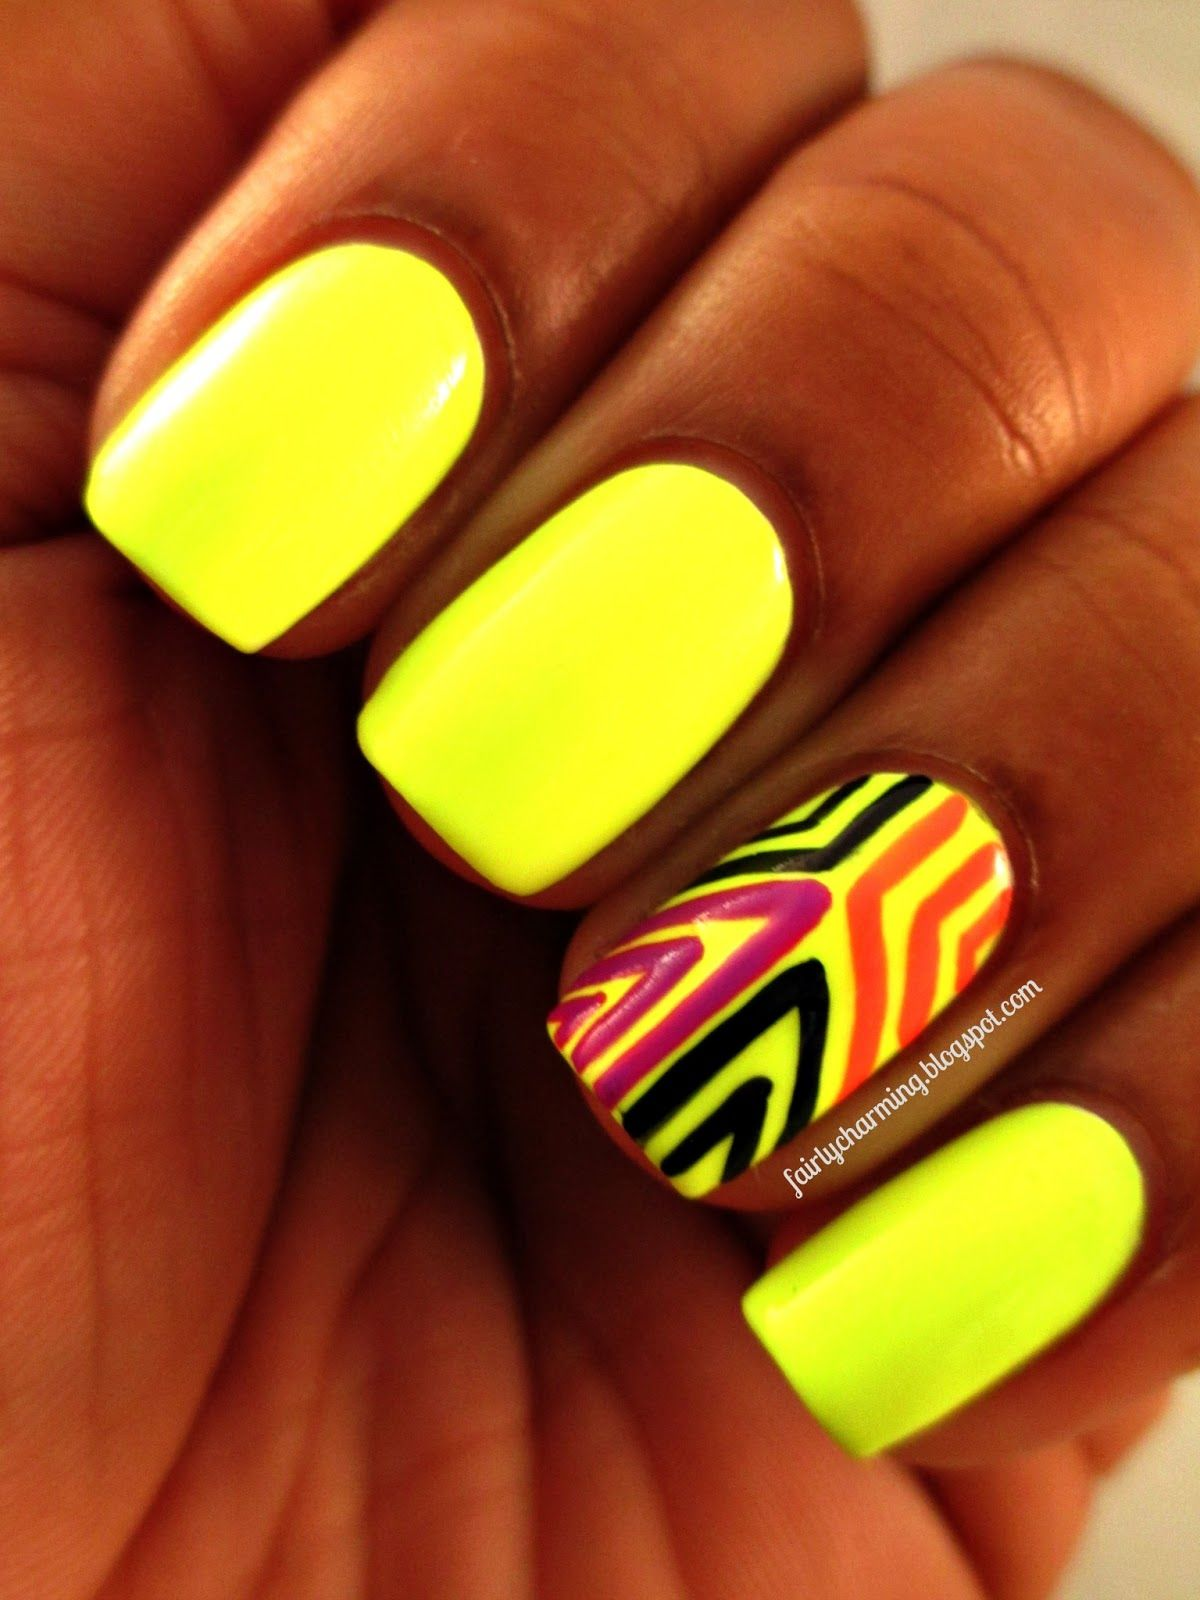 Neon Nail Art Designs | 50+ Beautiful Bright and Neon Nails Designs |  makeup ideas | Pinterest | Neon yellow nails, Yellow nails and Nail color  designs - Neon Nail Art Designs 50+ Beautiful Bright And Neon Nails Designs